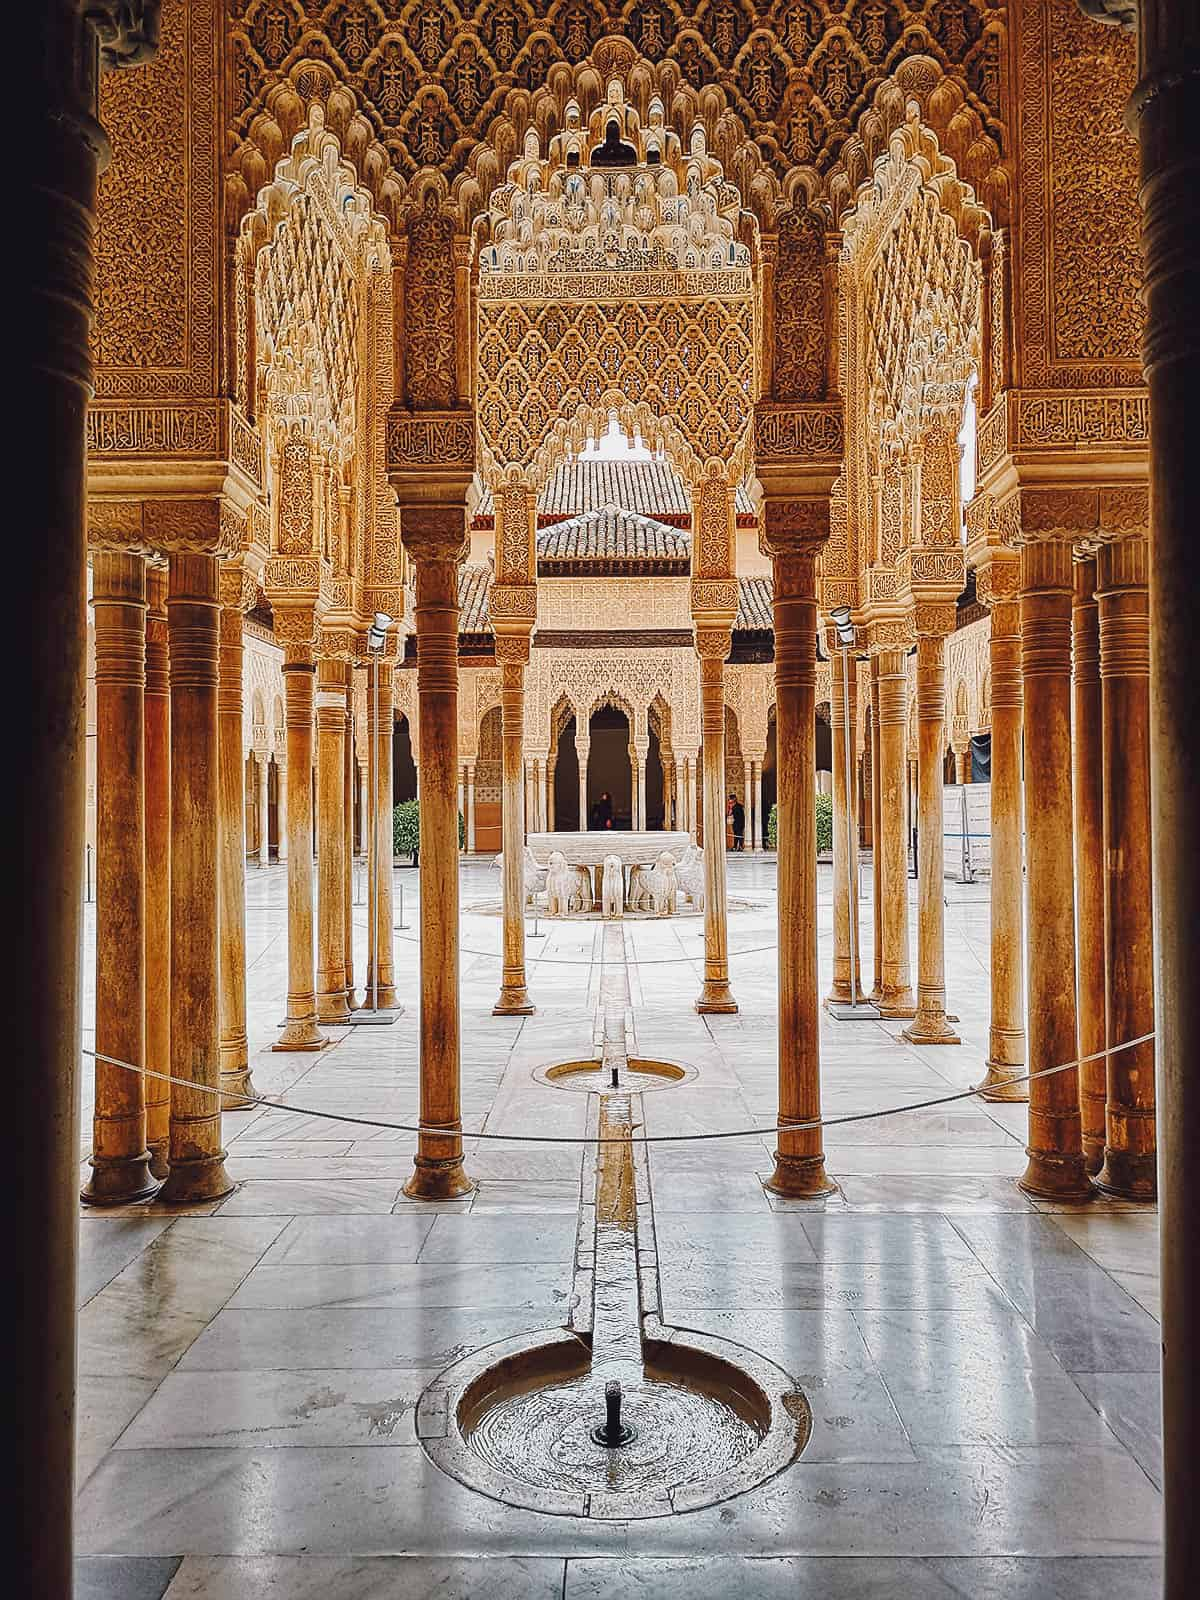 Nasrid Palaces in Granada, Spain